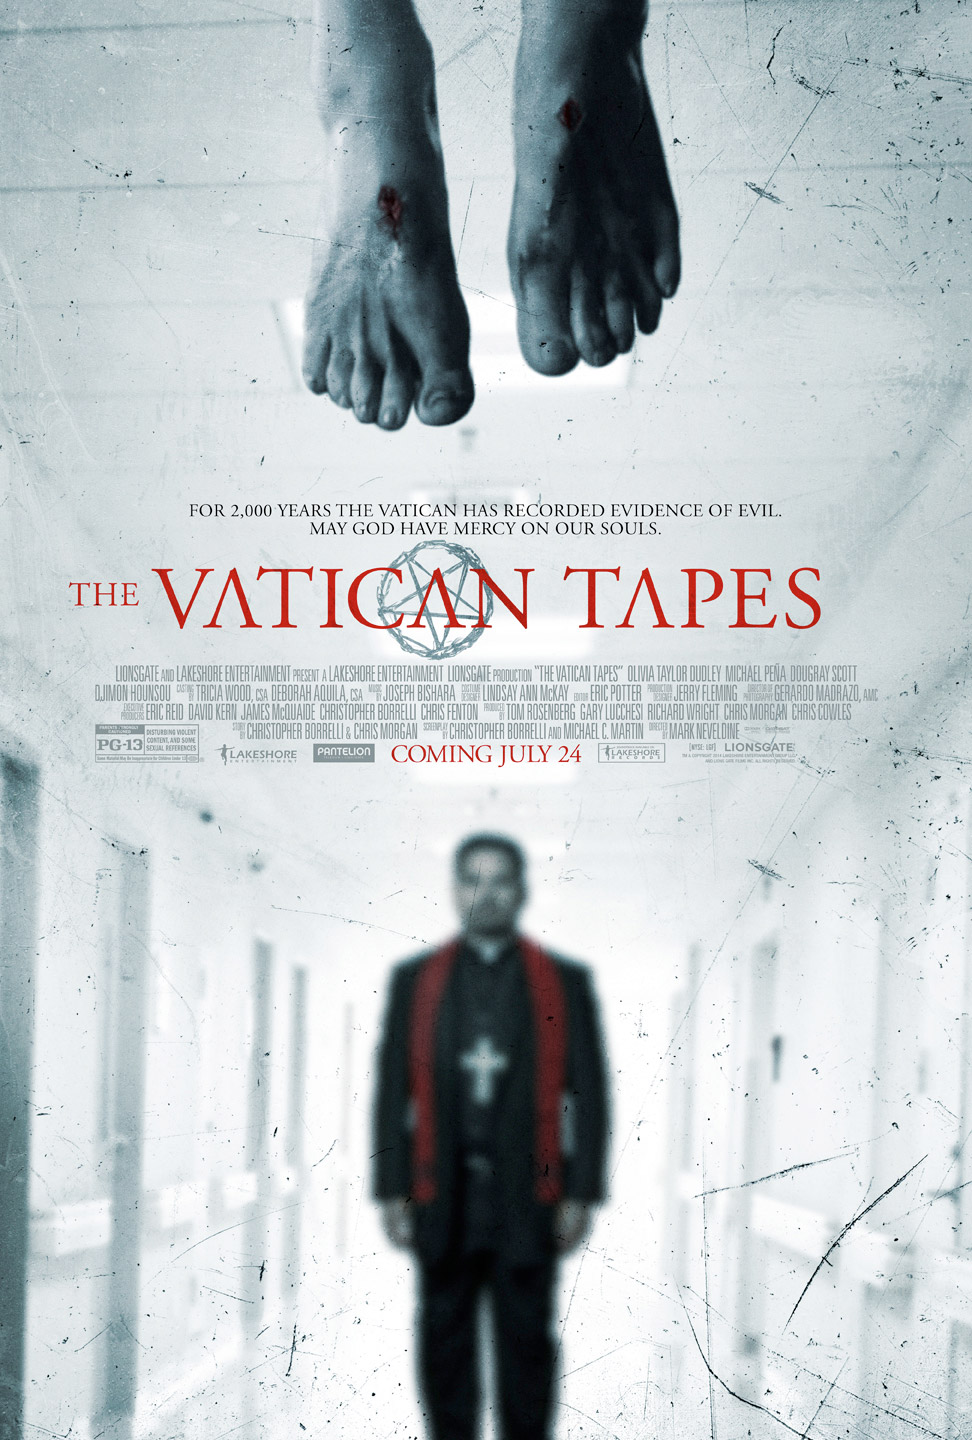 The Vatican Tapes alternate poster